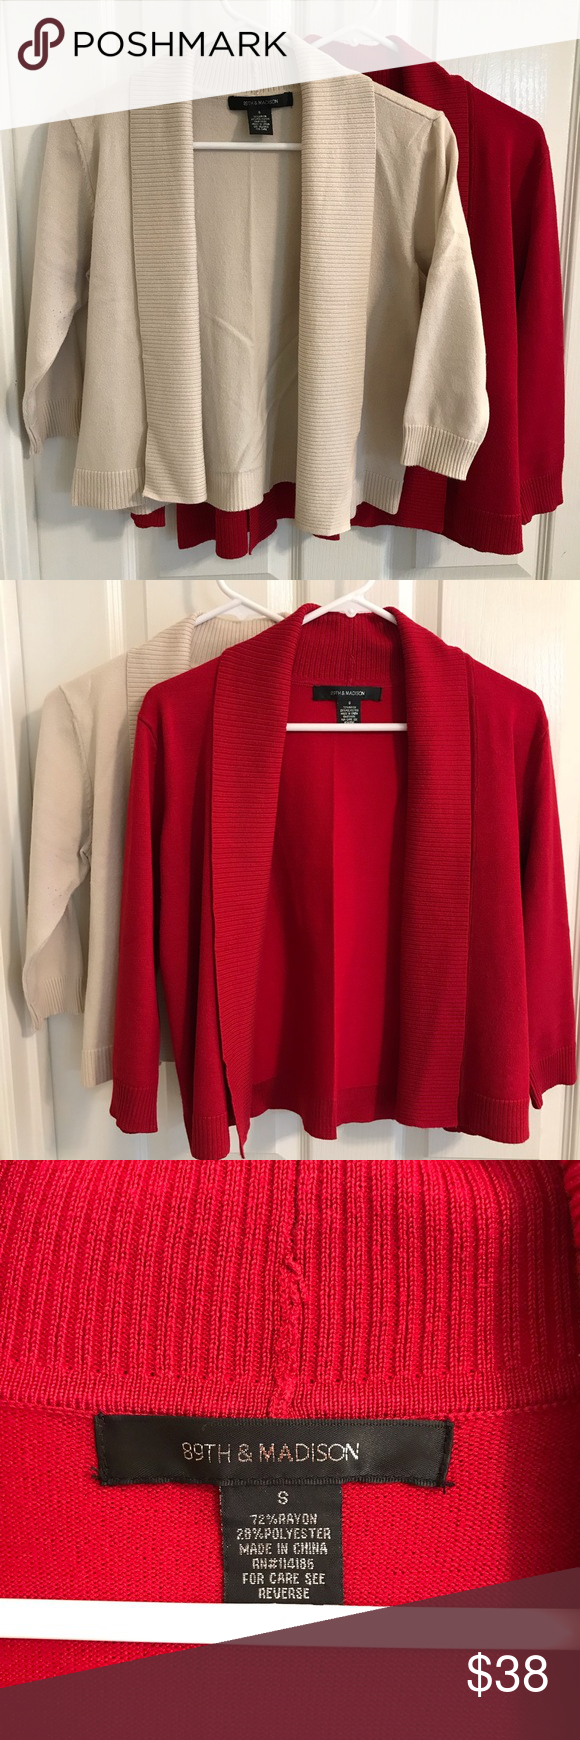 e0278c47397 Set of 2 cropped cardigans Two adorable shawl-collar cardigan sweaters! The  knit on these is incredibly soft and silky. These look GREAT over tanks or  ...